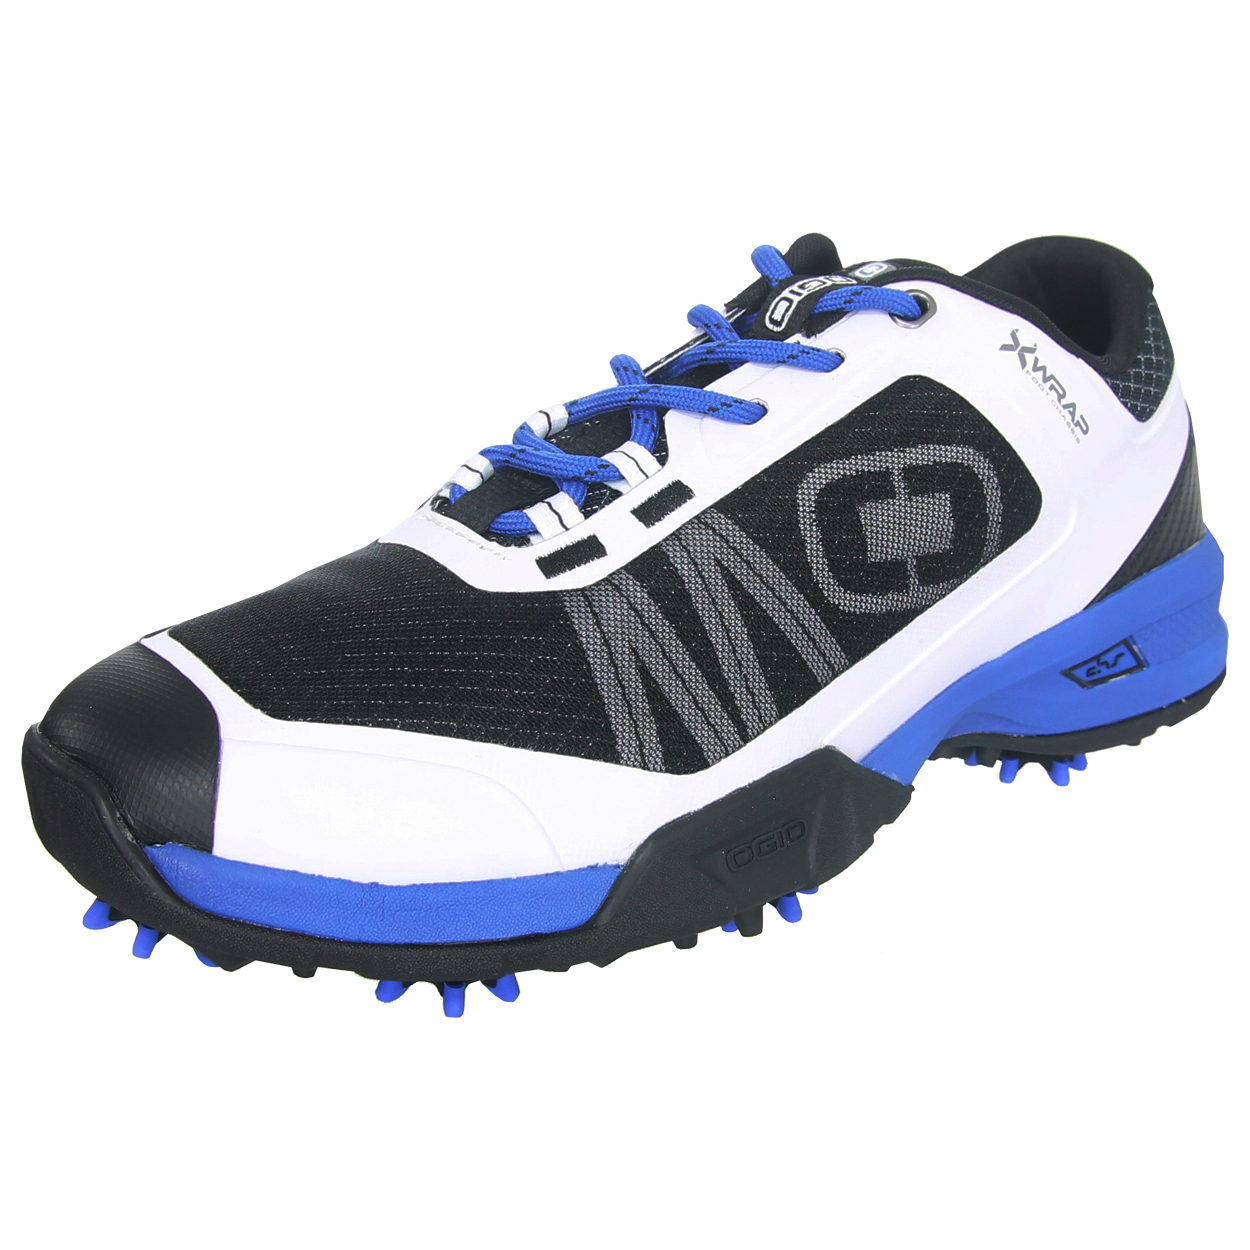 Ogio City Spiked Golf Shoes